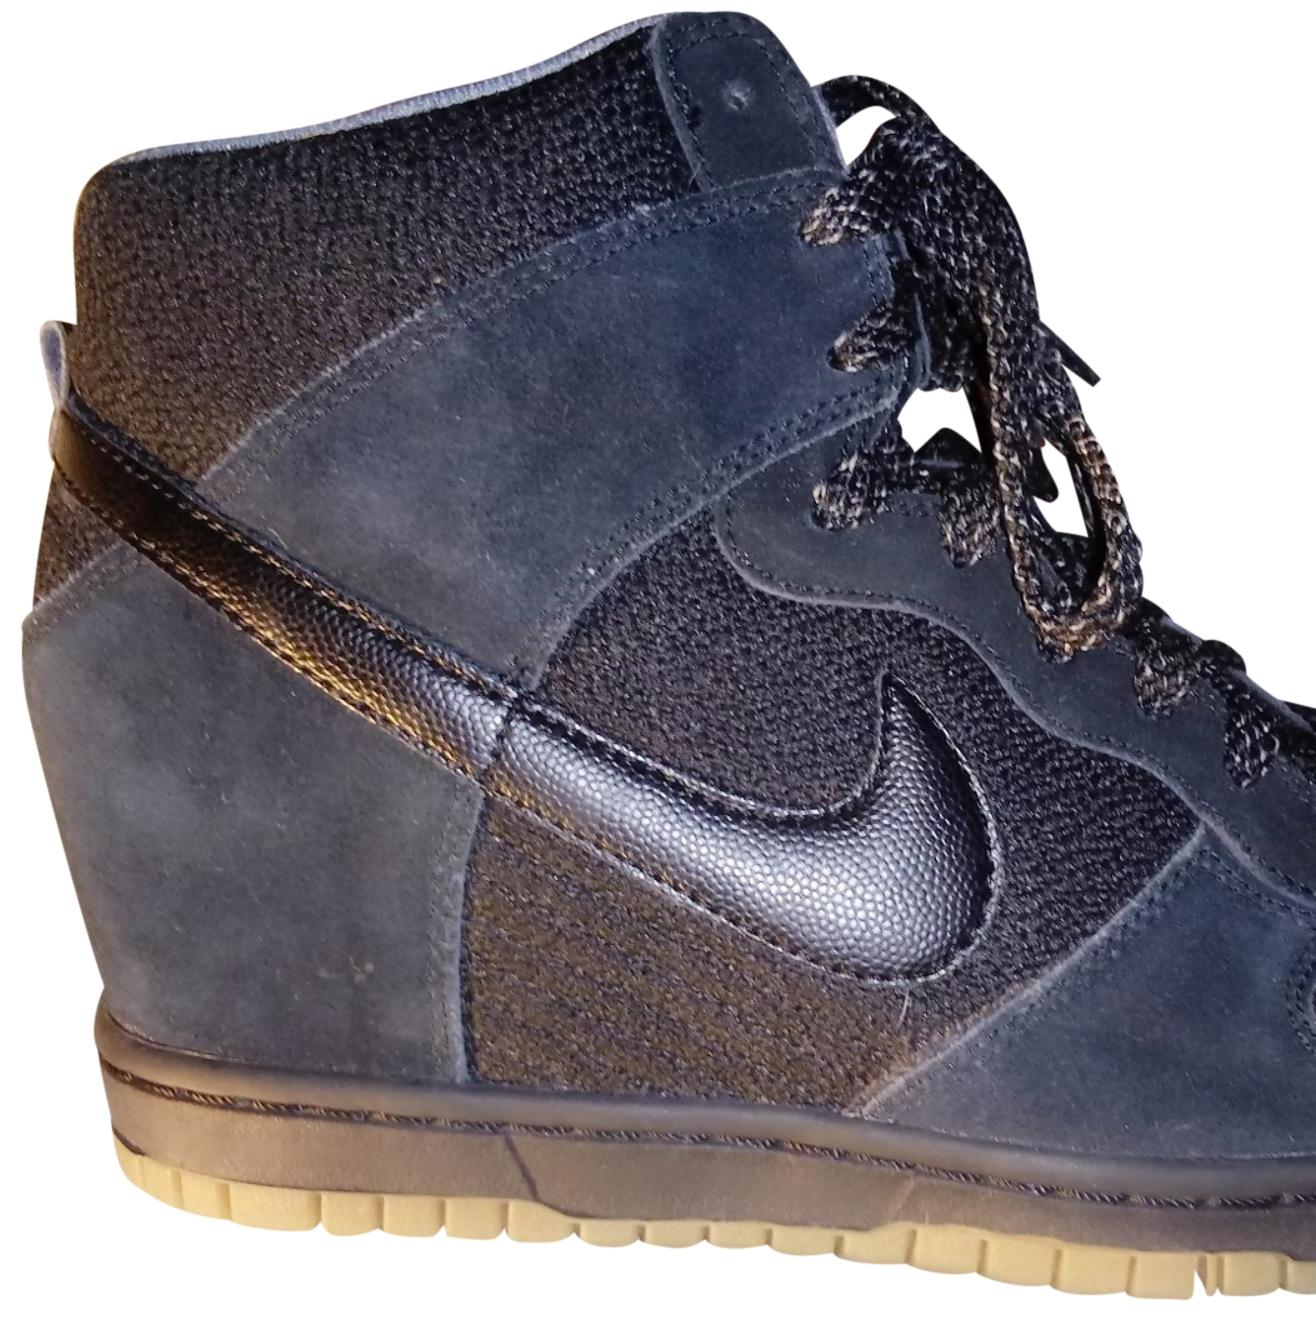 Nike High Dunk Wedges Size B) US 9.5 Regular (M, B) Size 3eed5f